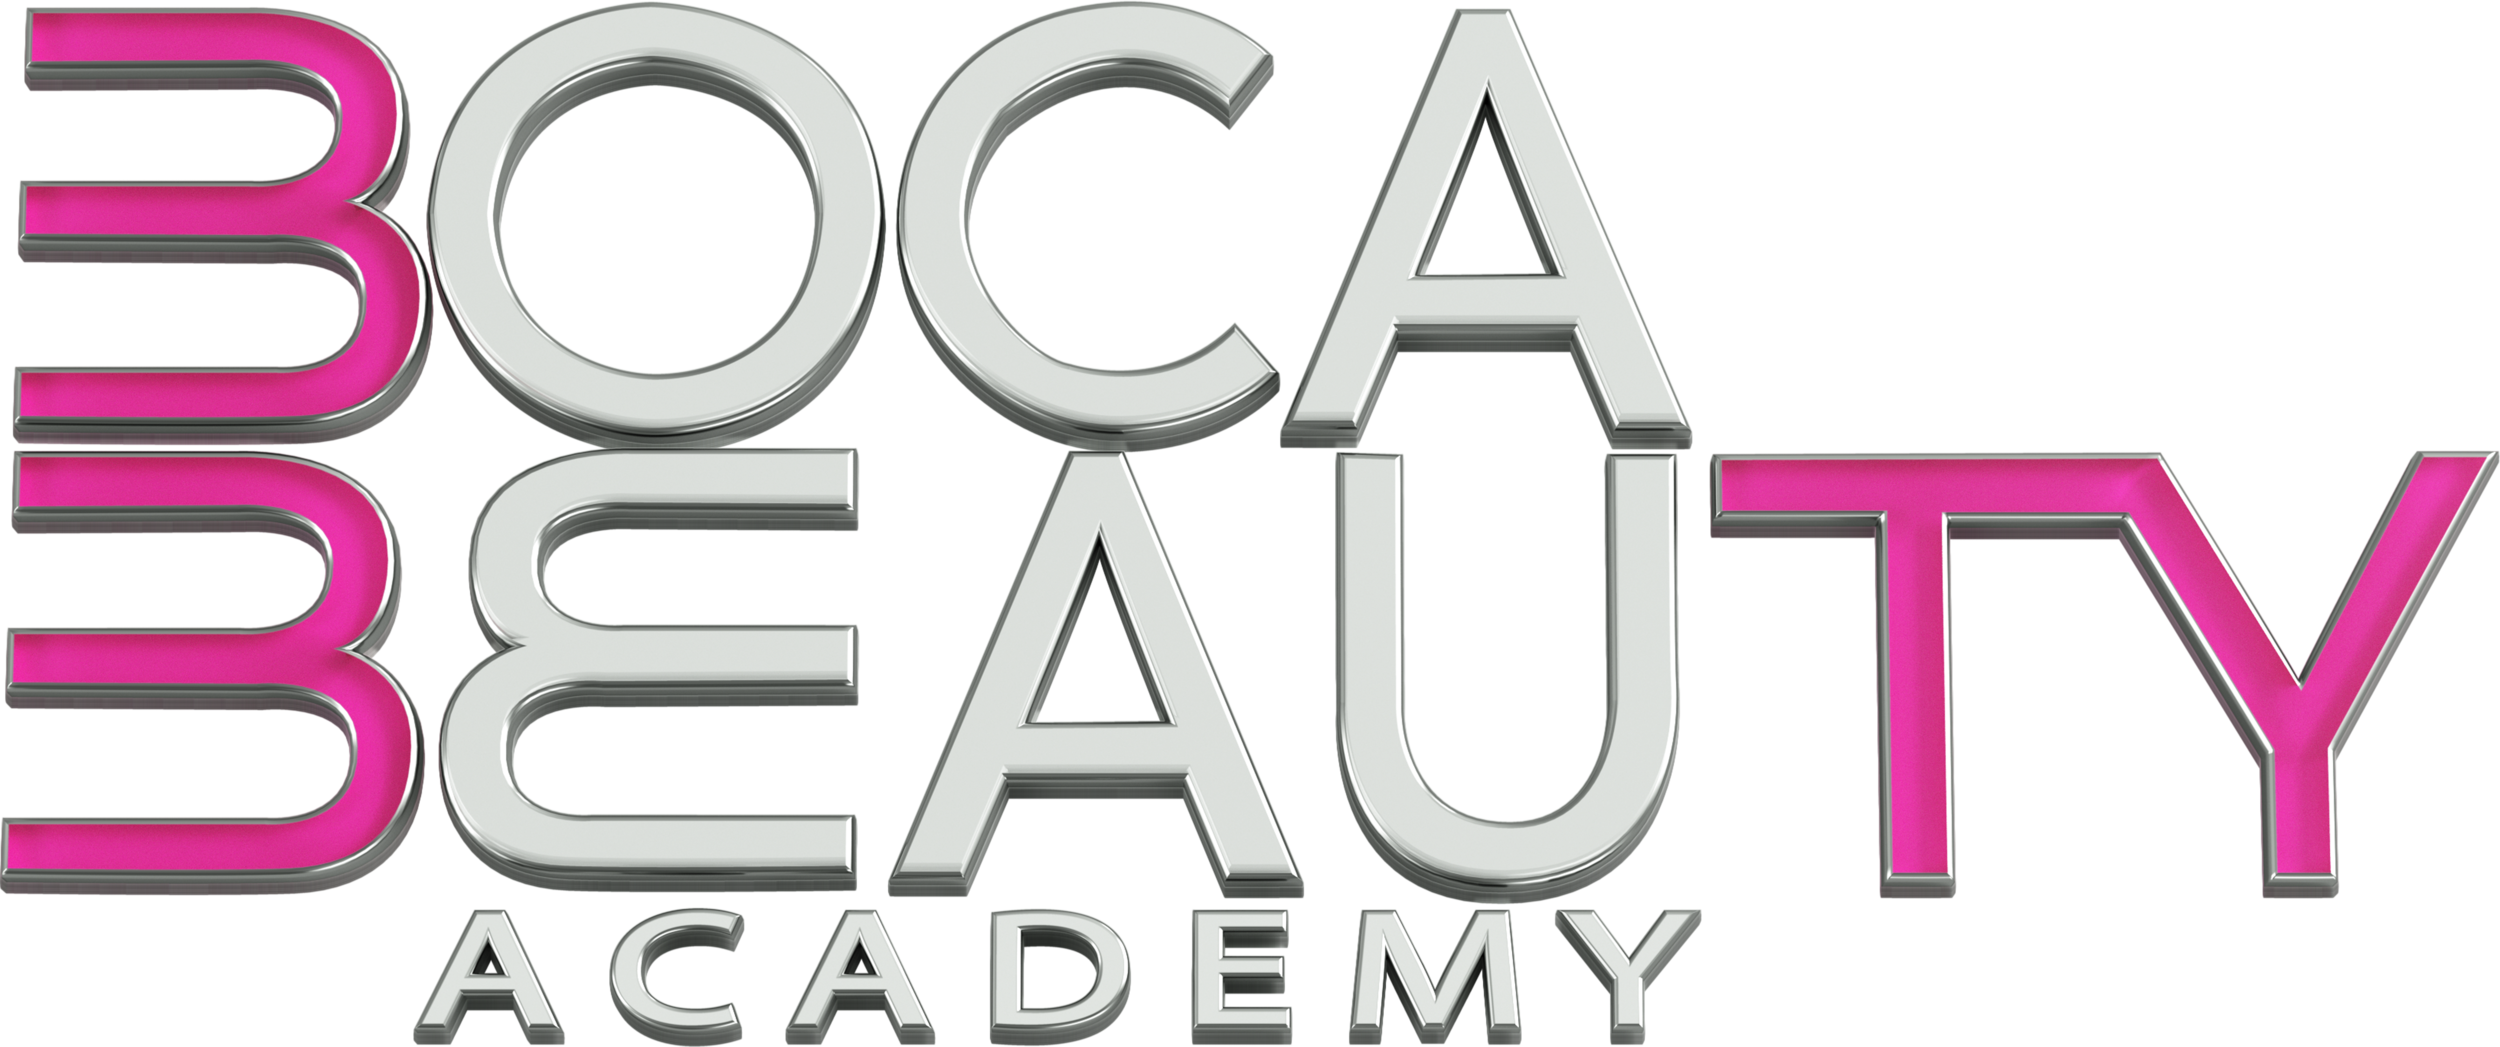 Boca Beauty logo.png